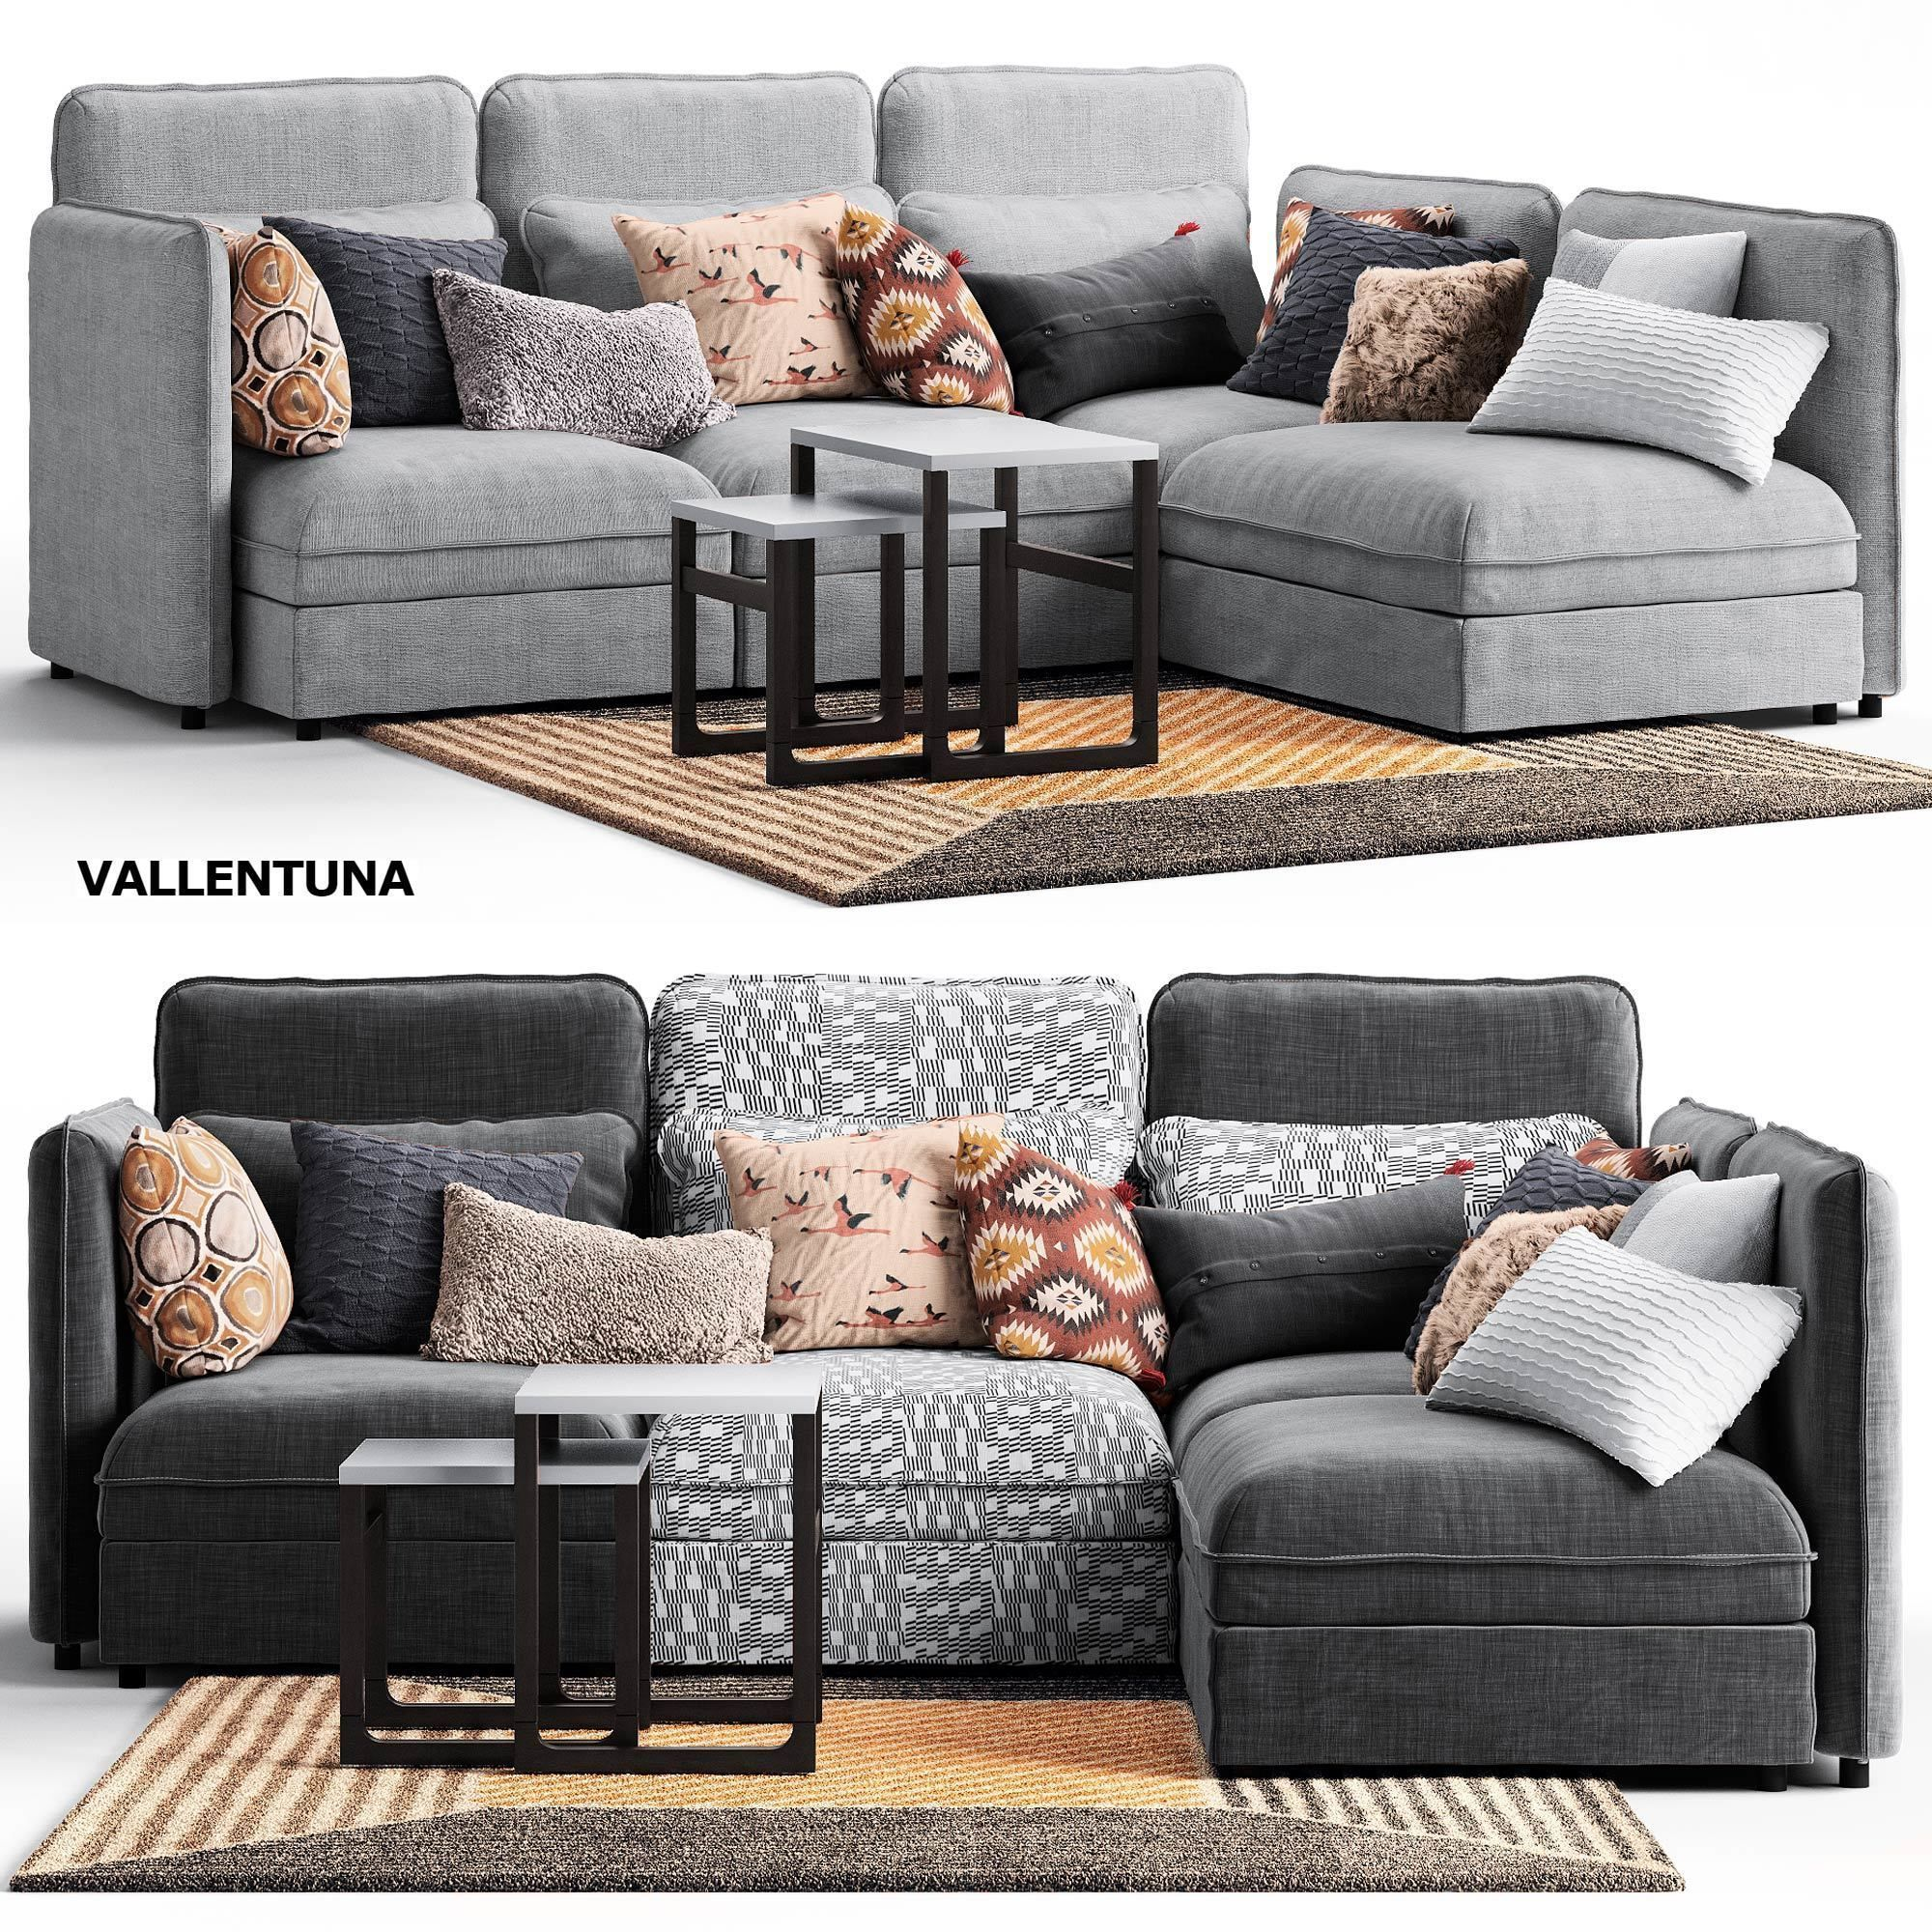 Couch Ikea Sofa Vallentuna Ikea 3d Model